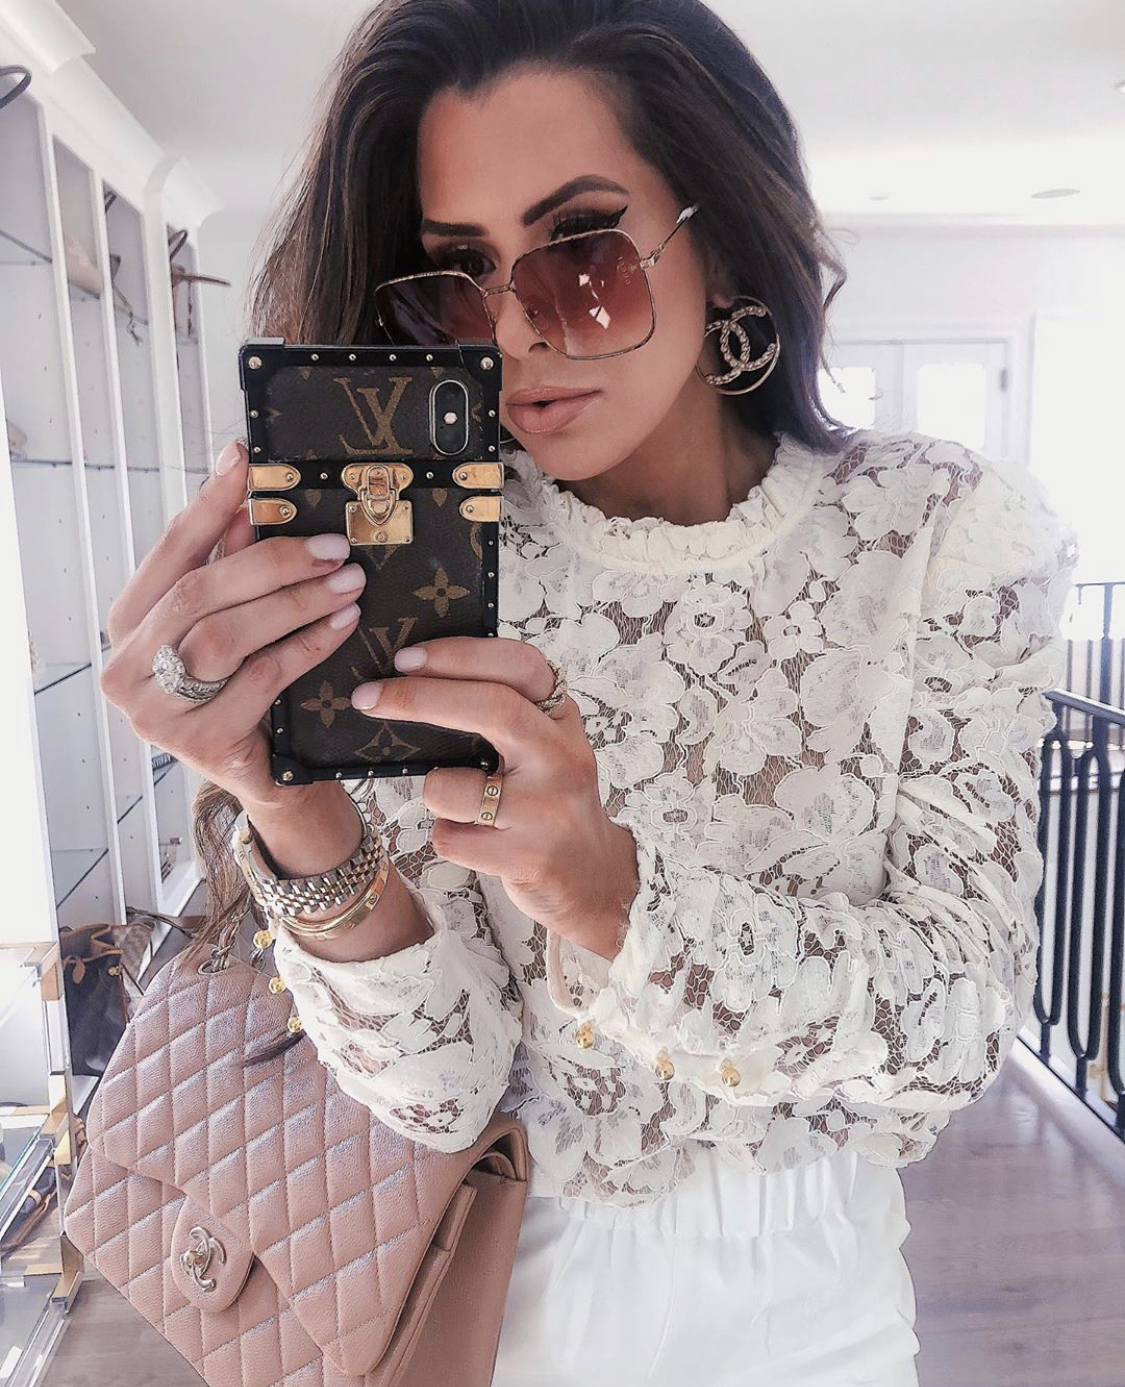 ShopBop Sale by popular US fashion blog, The Sweetest Thing: image of a woman wearing a ShopBop WAYF Emma Puff Sleeve Lace Top.